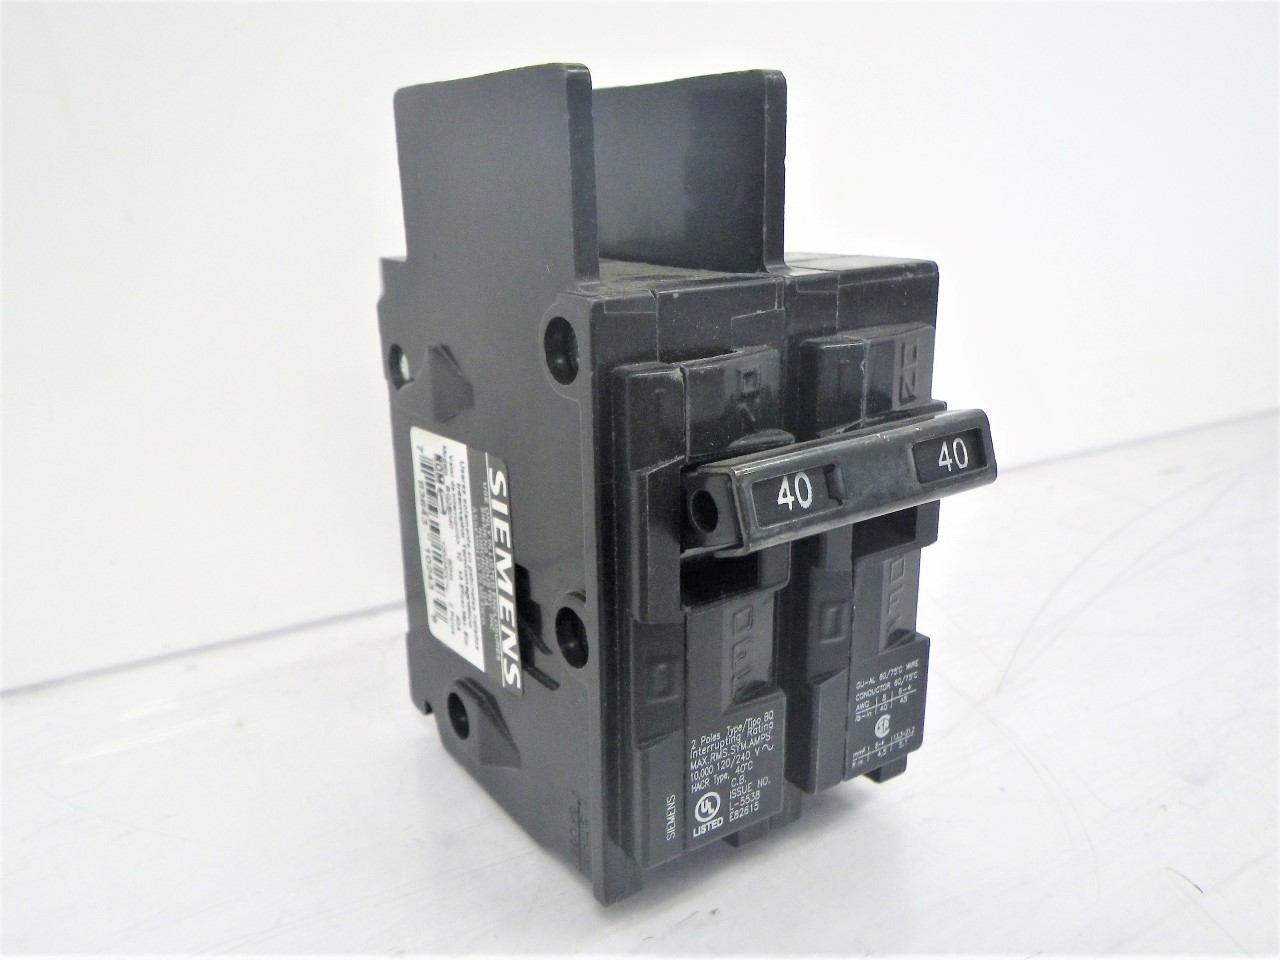 BQ2B040 Siemens Circuit Breaker 40A 120240V 2-Pole (NEW) (3)